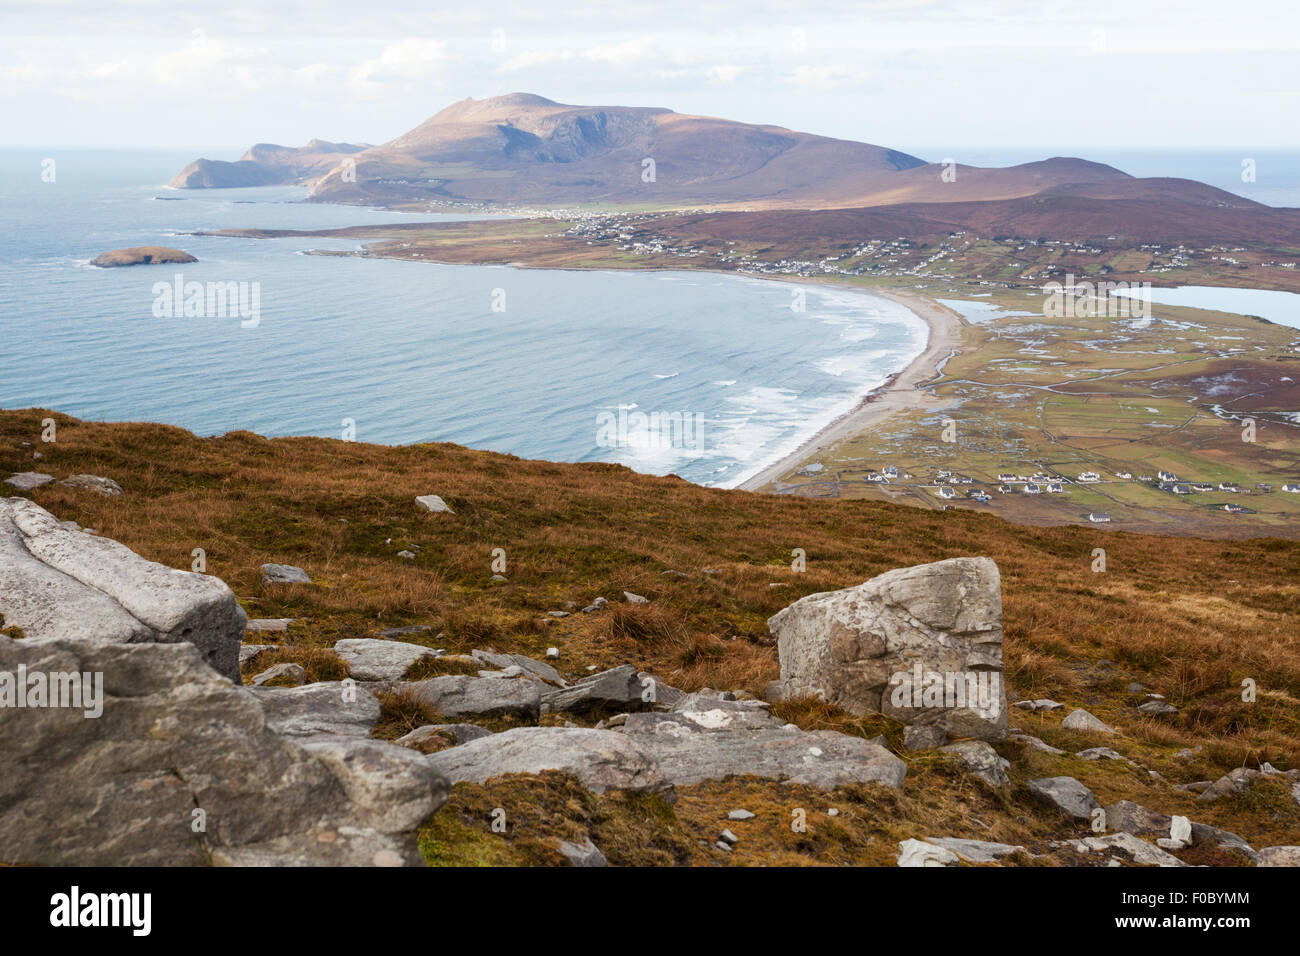 View at Keel and Slievemore mountain  from Minaun, Achill island. - Stock Image